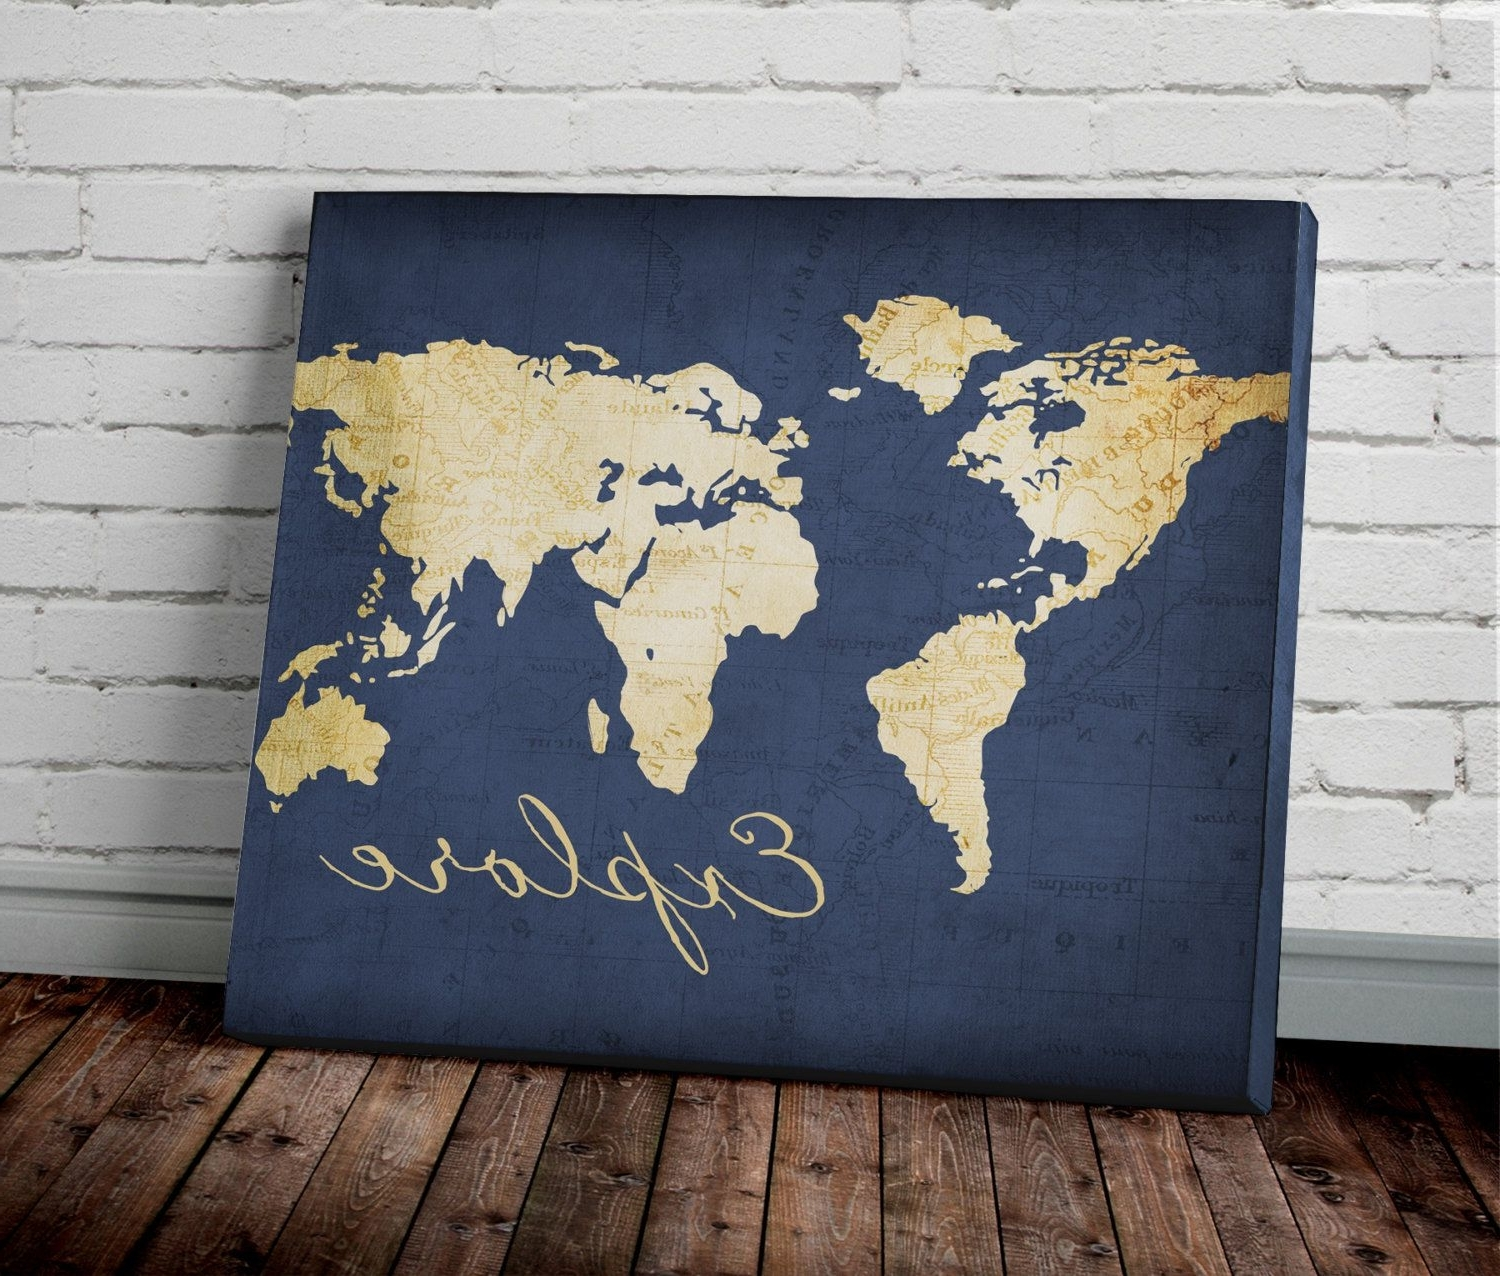 Pinterest Throughout World Map Wall Art Canvas (View 5 of 15)